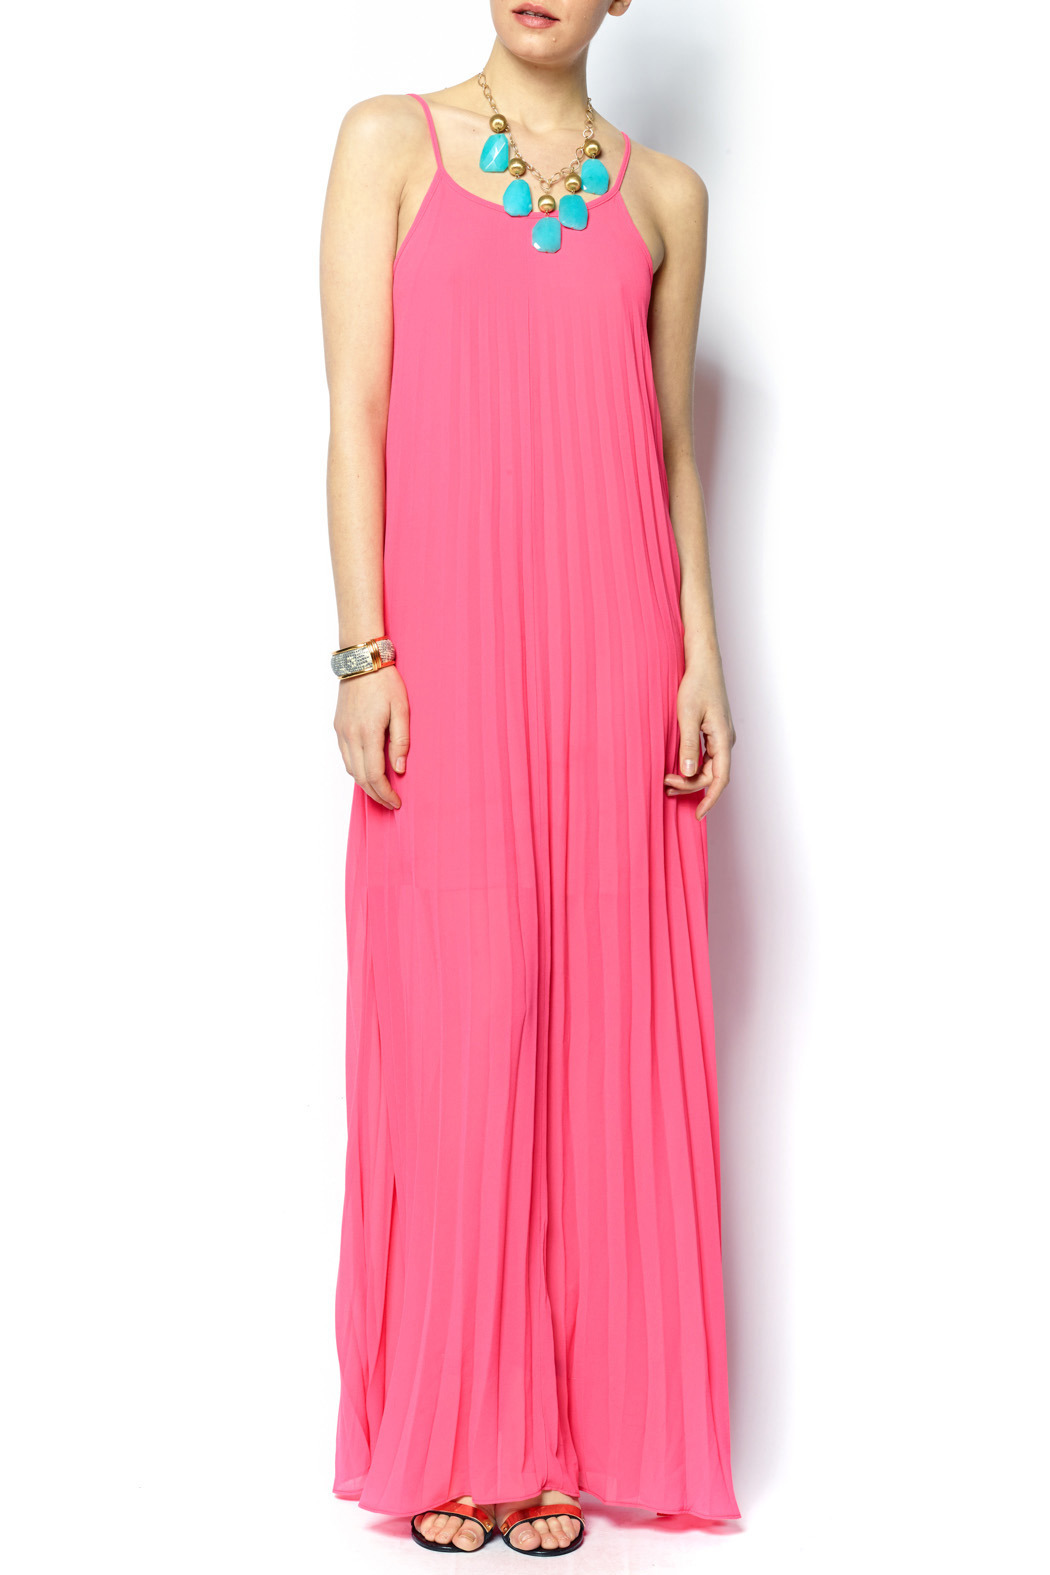 7a8c16bf60b Caren Forbes Accordion Pleated Maxi Dress from Connecticut — Shoptiques